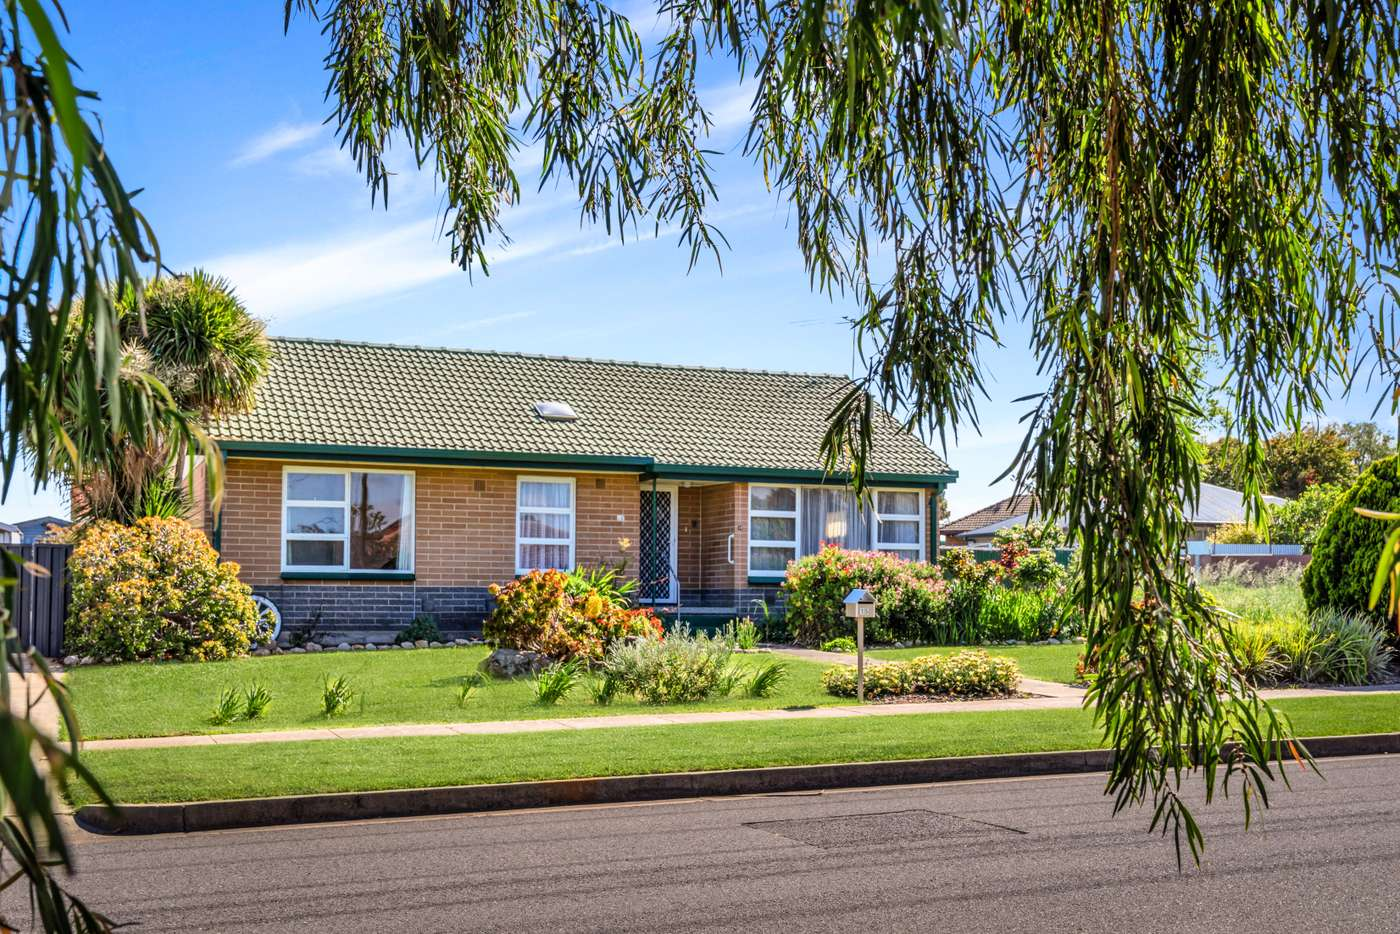 Main view of Homely house listing, 15 Kenney Street, Christies Beach SA 5165